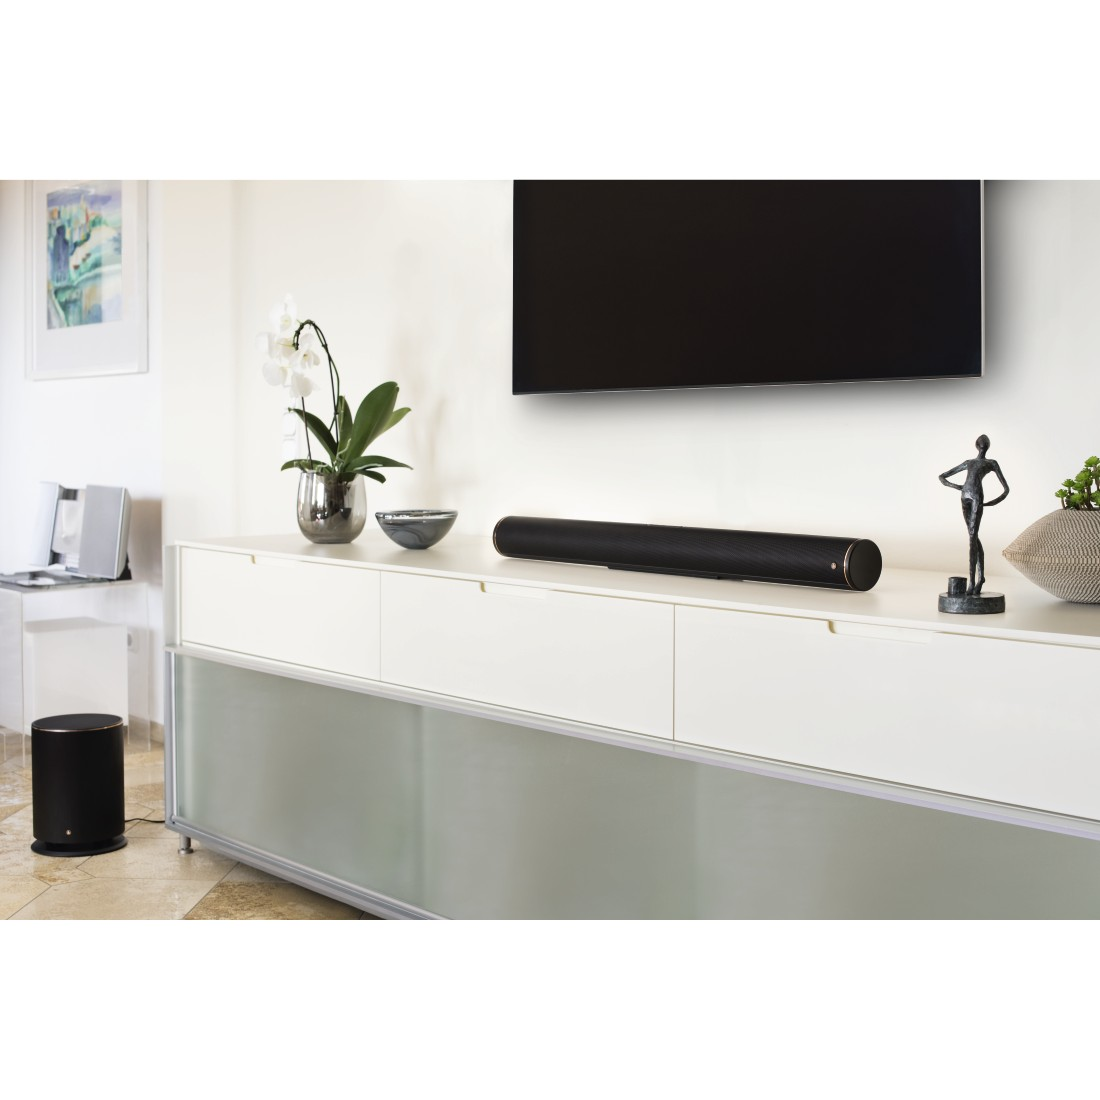 awx2 Druckfähige Anwendung 2 - Hama, Smart-TV-Soundbar 2.1 SIRIUM4000ABT, Wireless Subwoofer/Alexa/Bluetooth